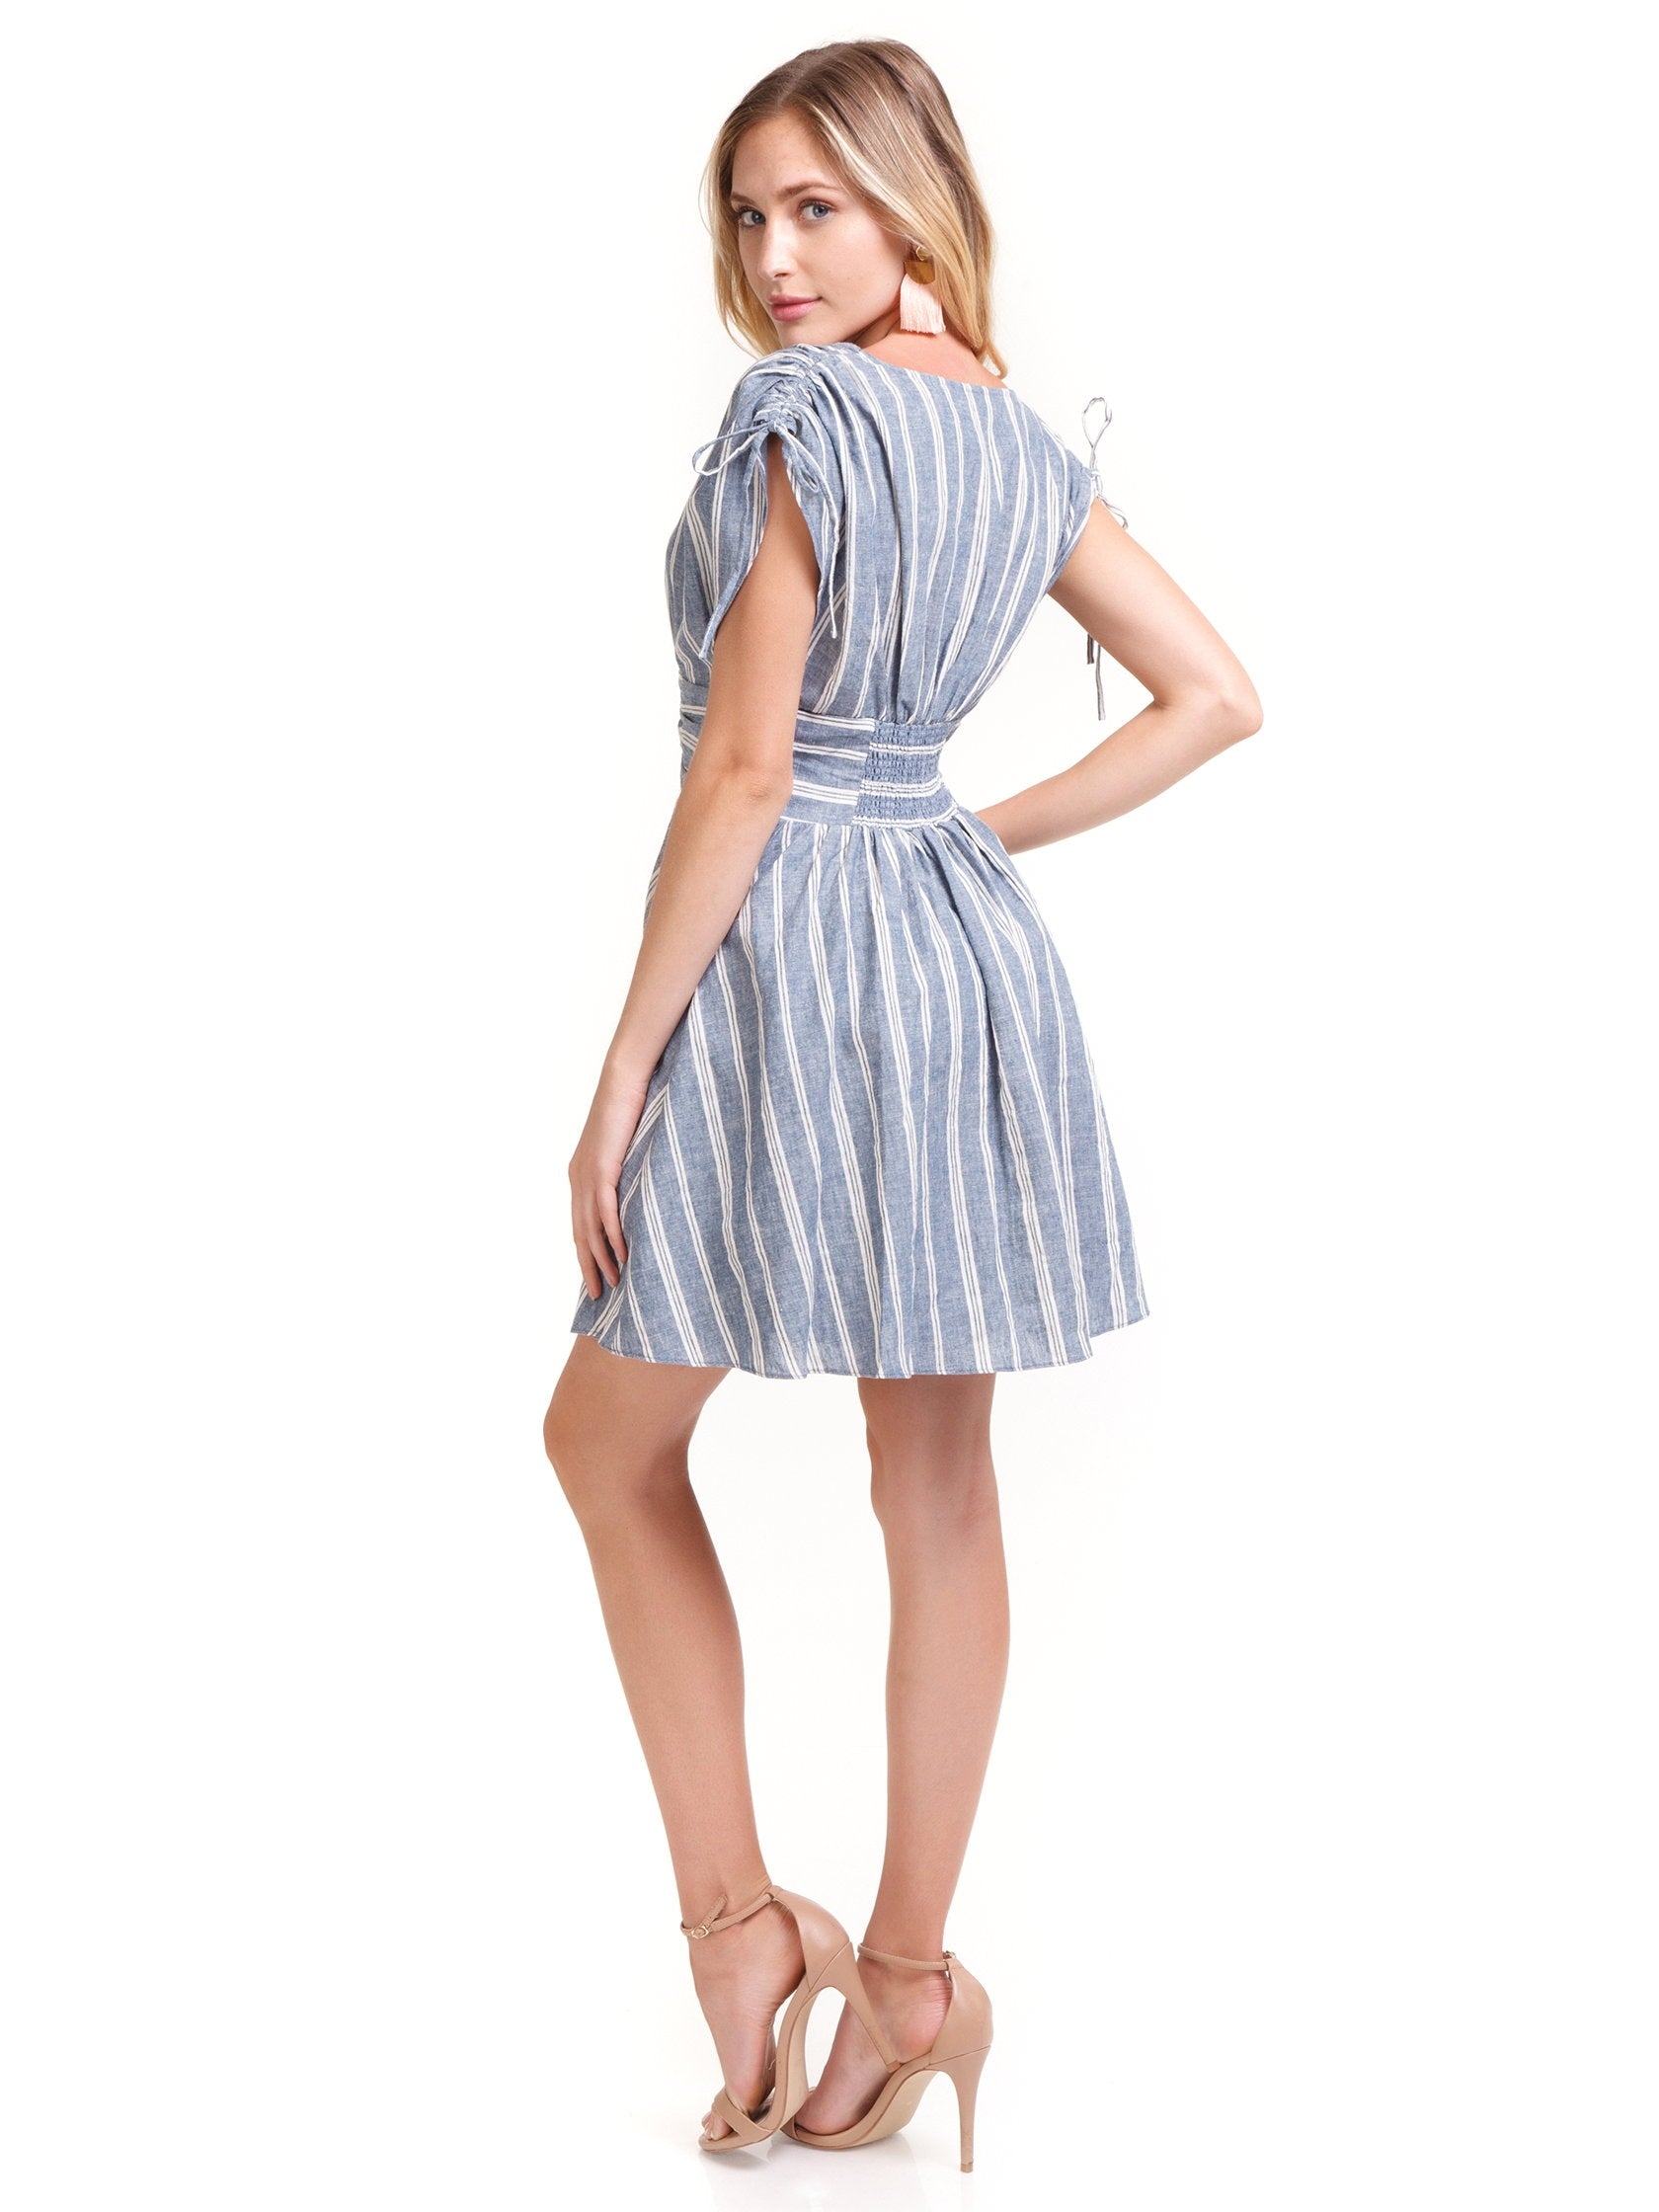 Women wearing a dress rental from Free People called Roll The Dice Striped Dress